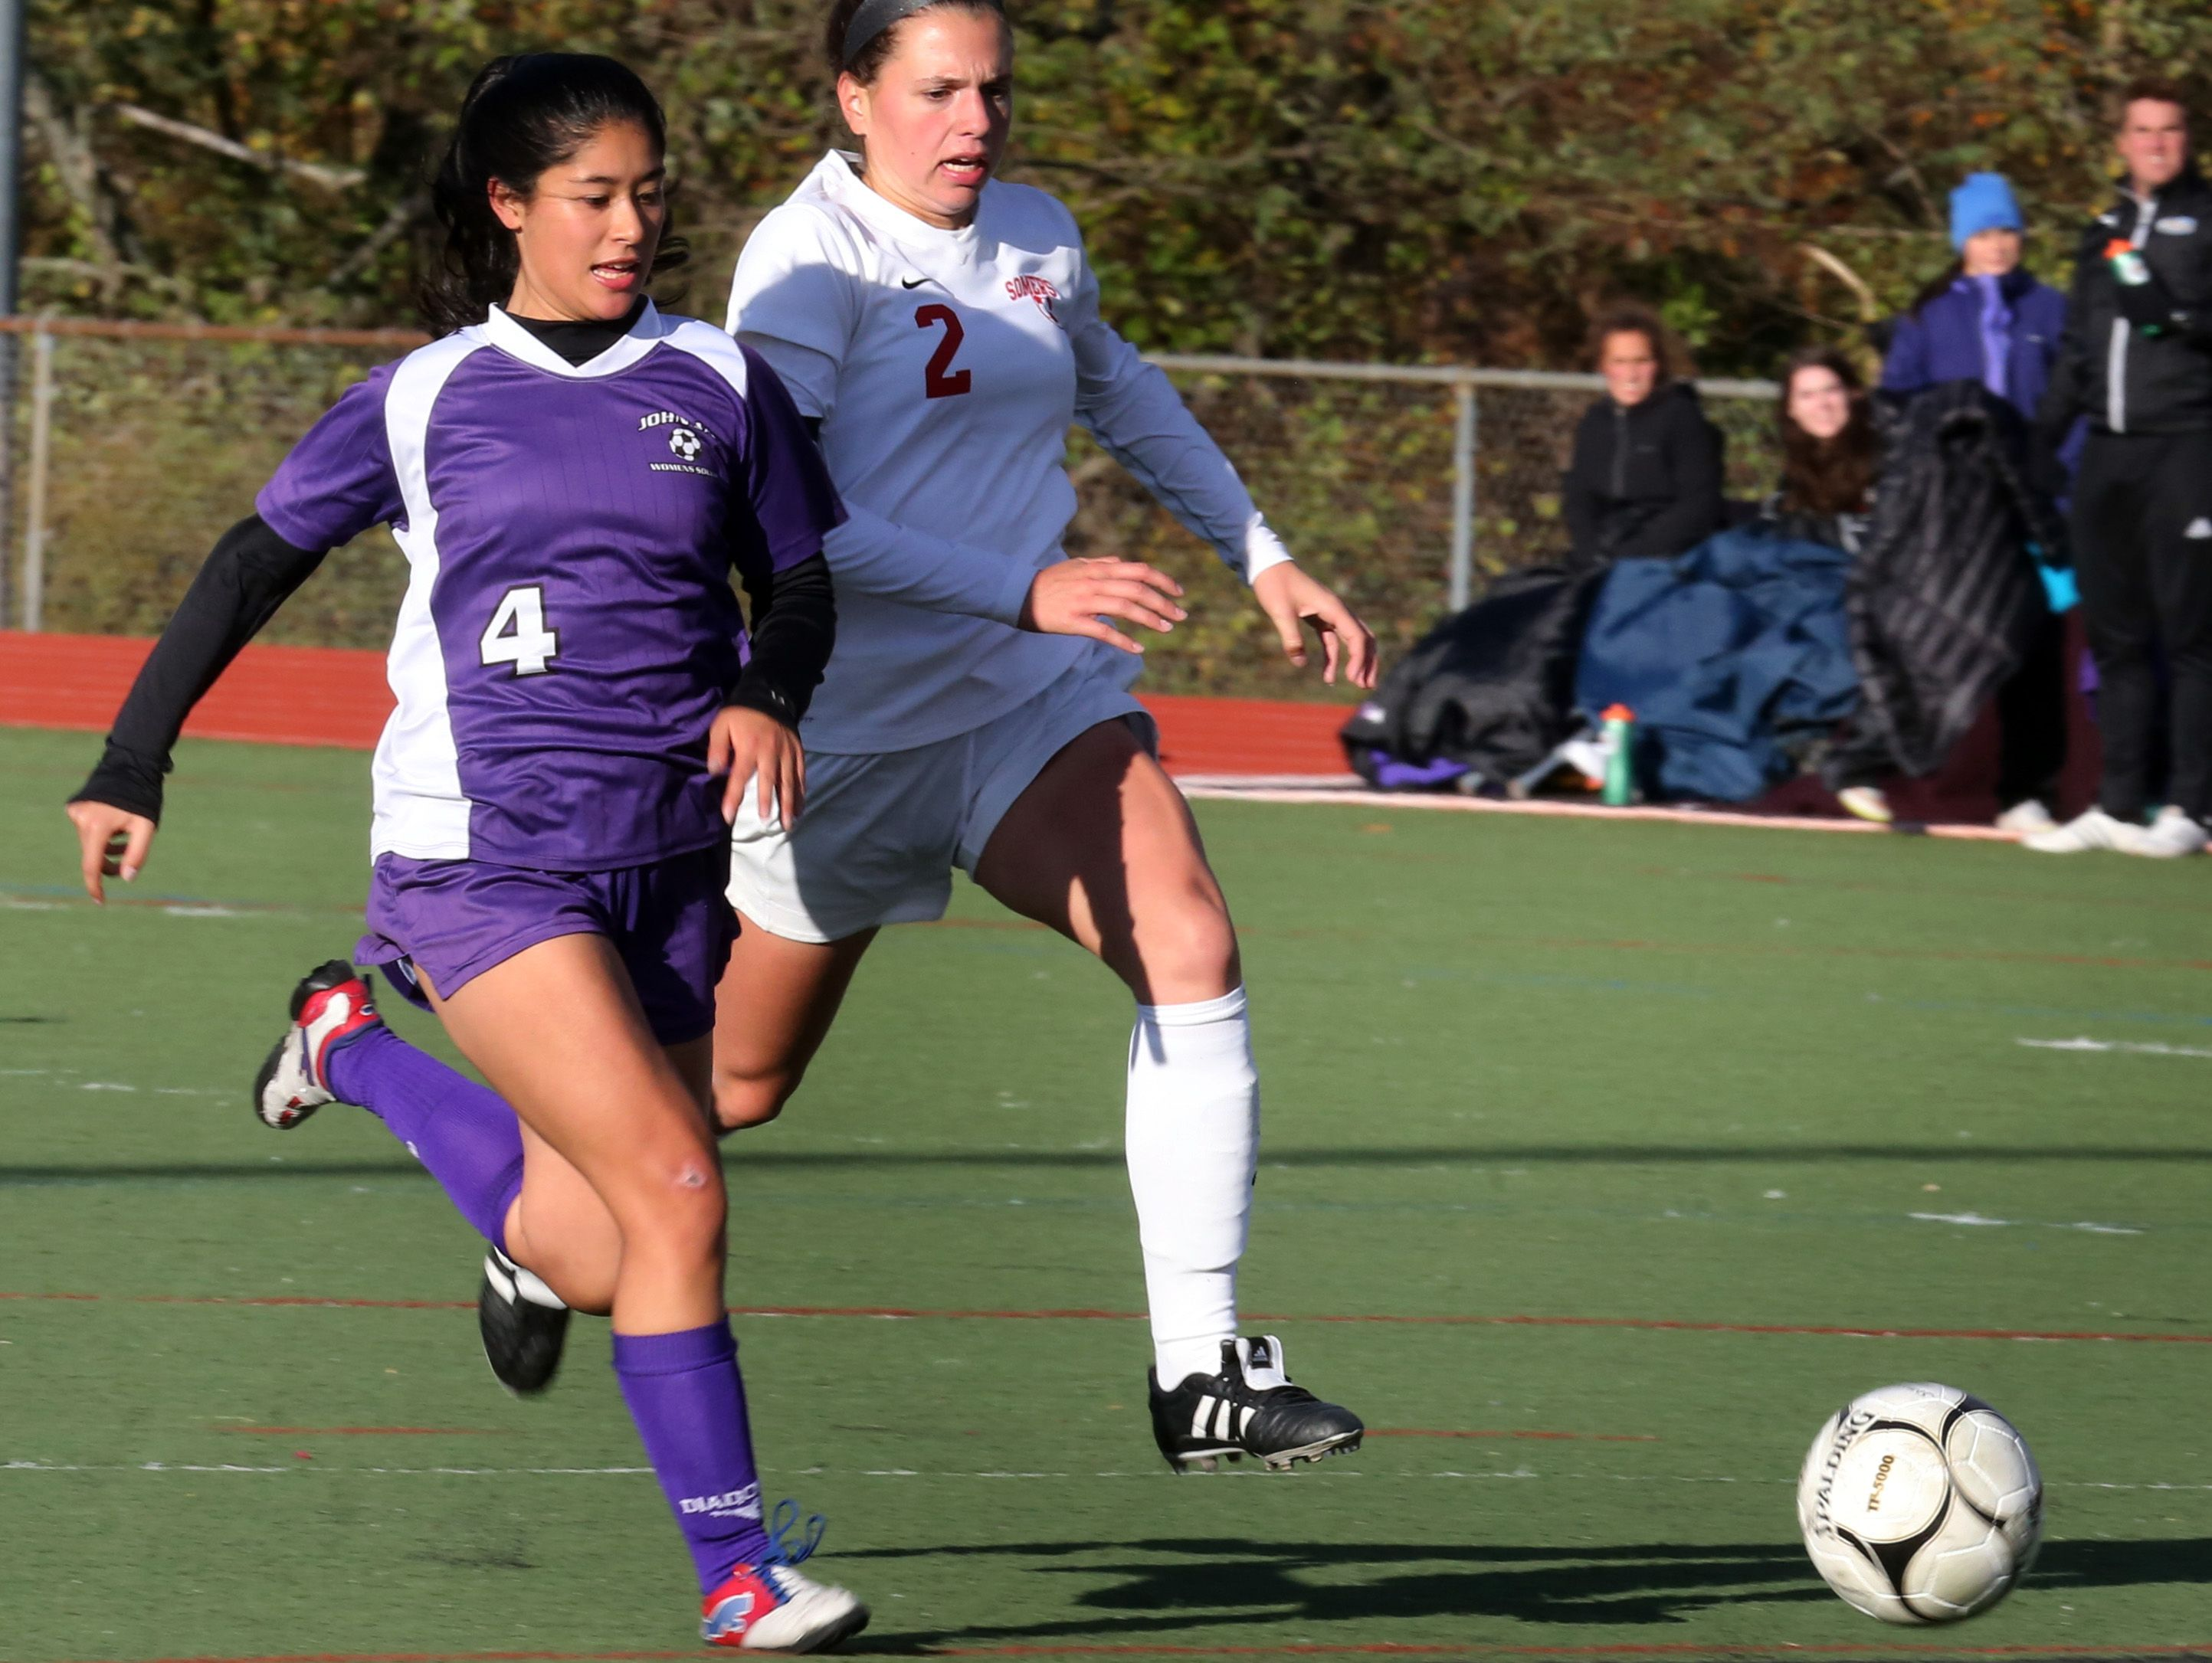 Somers Jenna Menta (2) and John Jay's Katrina Weiner (4) battles for control of the ball during Section 1 Class A girls soccer semifinal at Somers High School on Oct. 28, 2016. Somers defeats John Jay Cross River 4-2.